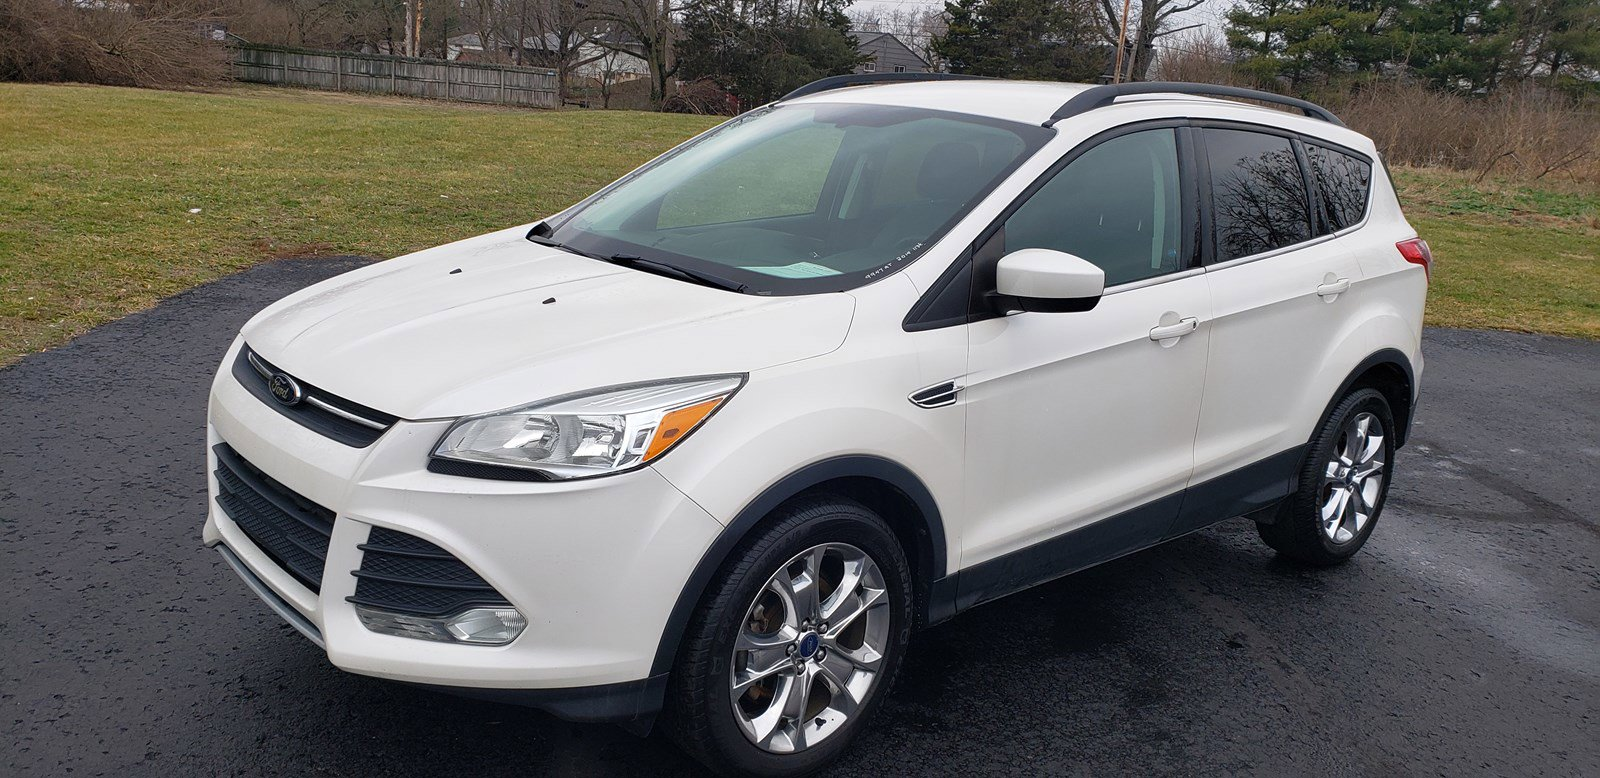 Special - 2014 FORD ESCAPE SE--$11,995--#9947AT